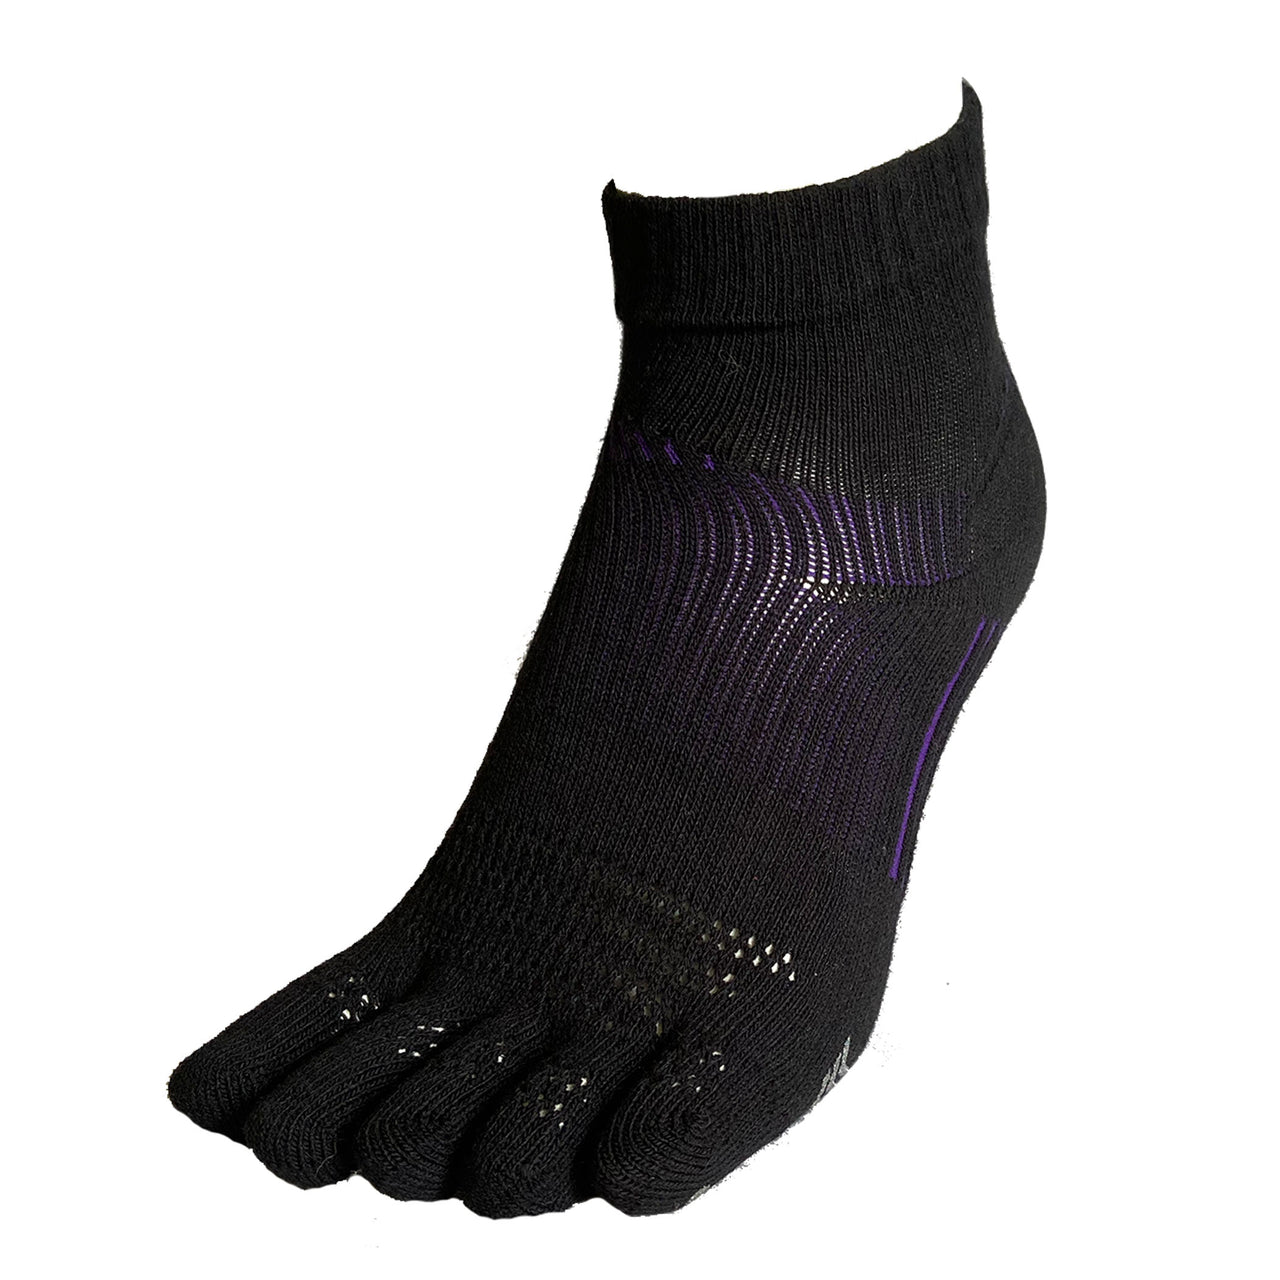 5 Toes Arch Support Ankle Running Socks with Grips for Women | Black - CHERRYSTONE